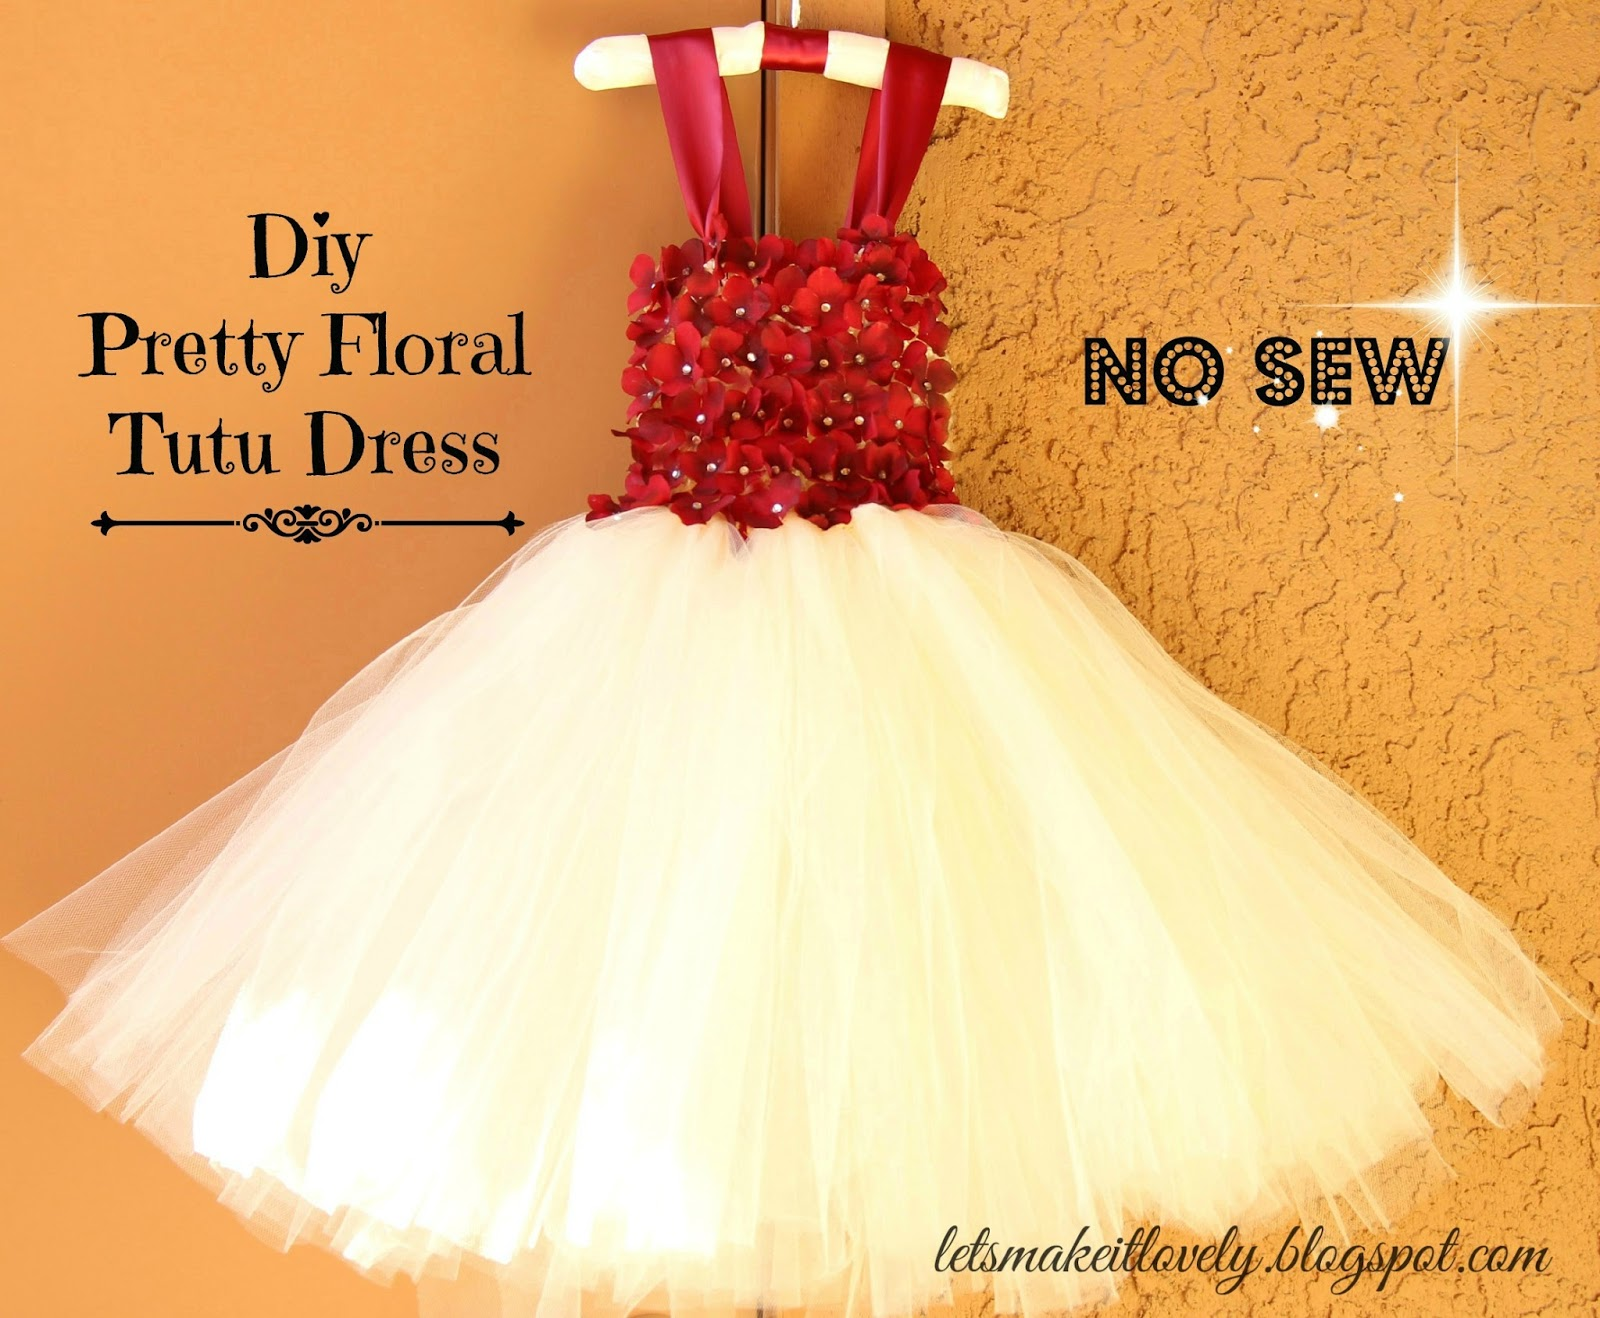 85d3f6794f DIY No Sew Tutu Dress. DIY Flower Girl Dress. DIY Floral Tutu Dress.